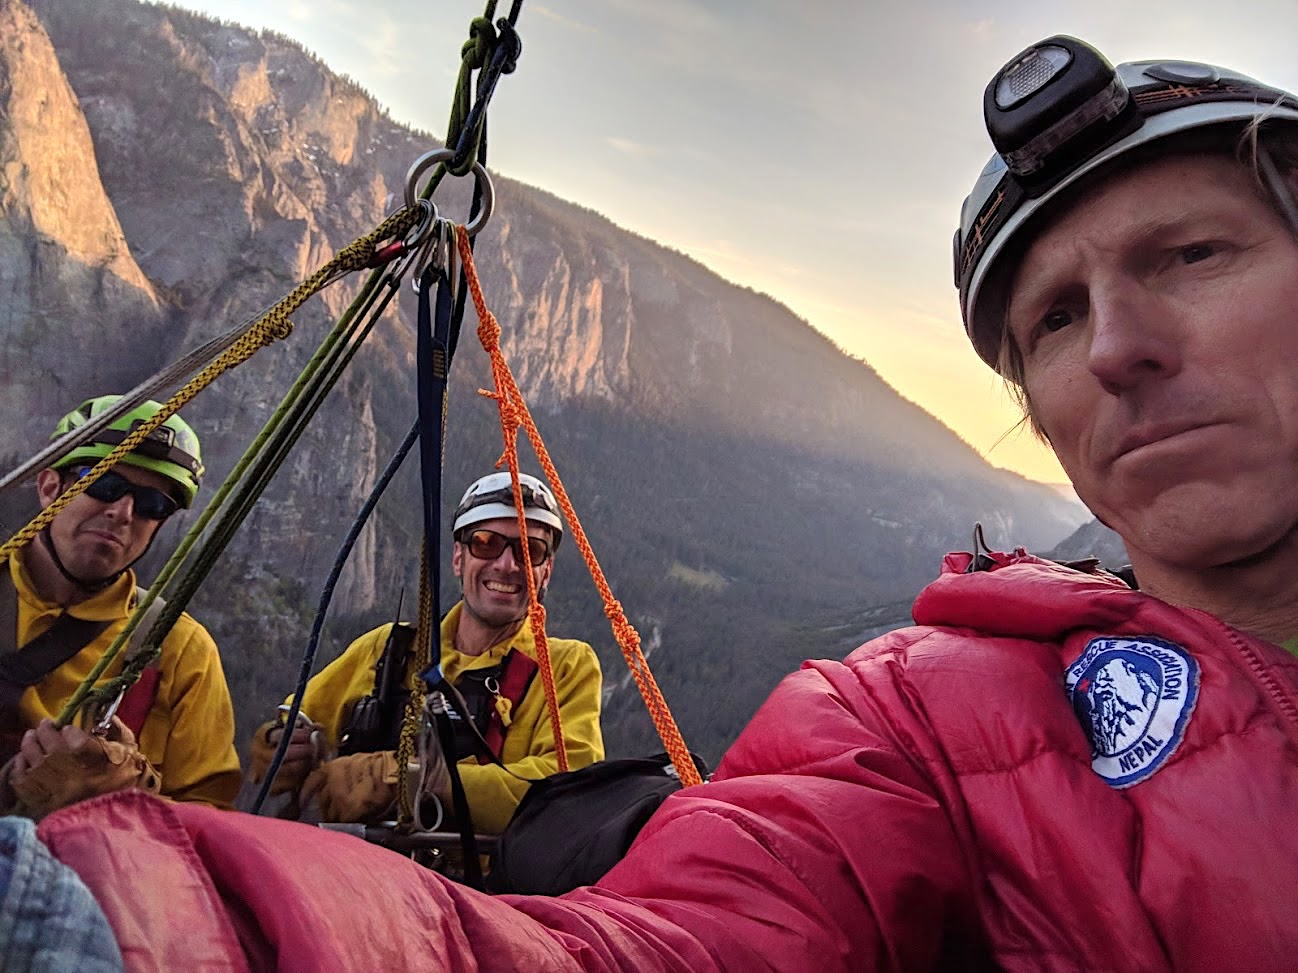 Yosemite rangers Brandon Latham (left) and Philip Johnson, having lowered from the top of El Capitan, arrive at the Gray Ledges to retrieve an injured Hans Florine (right).